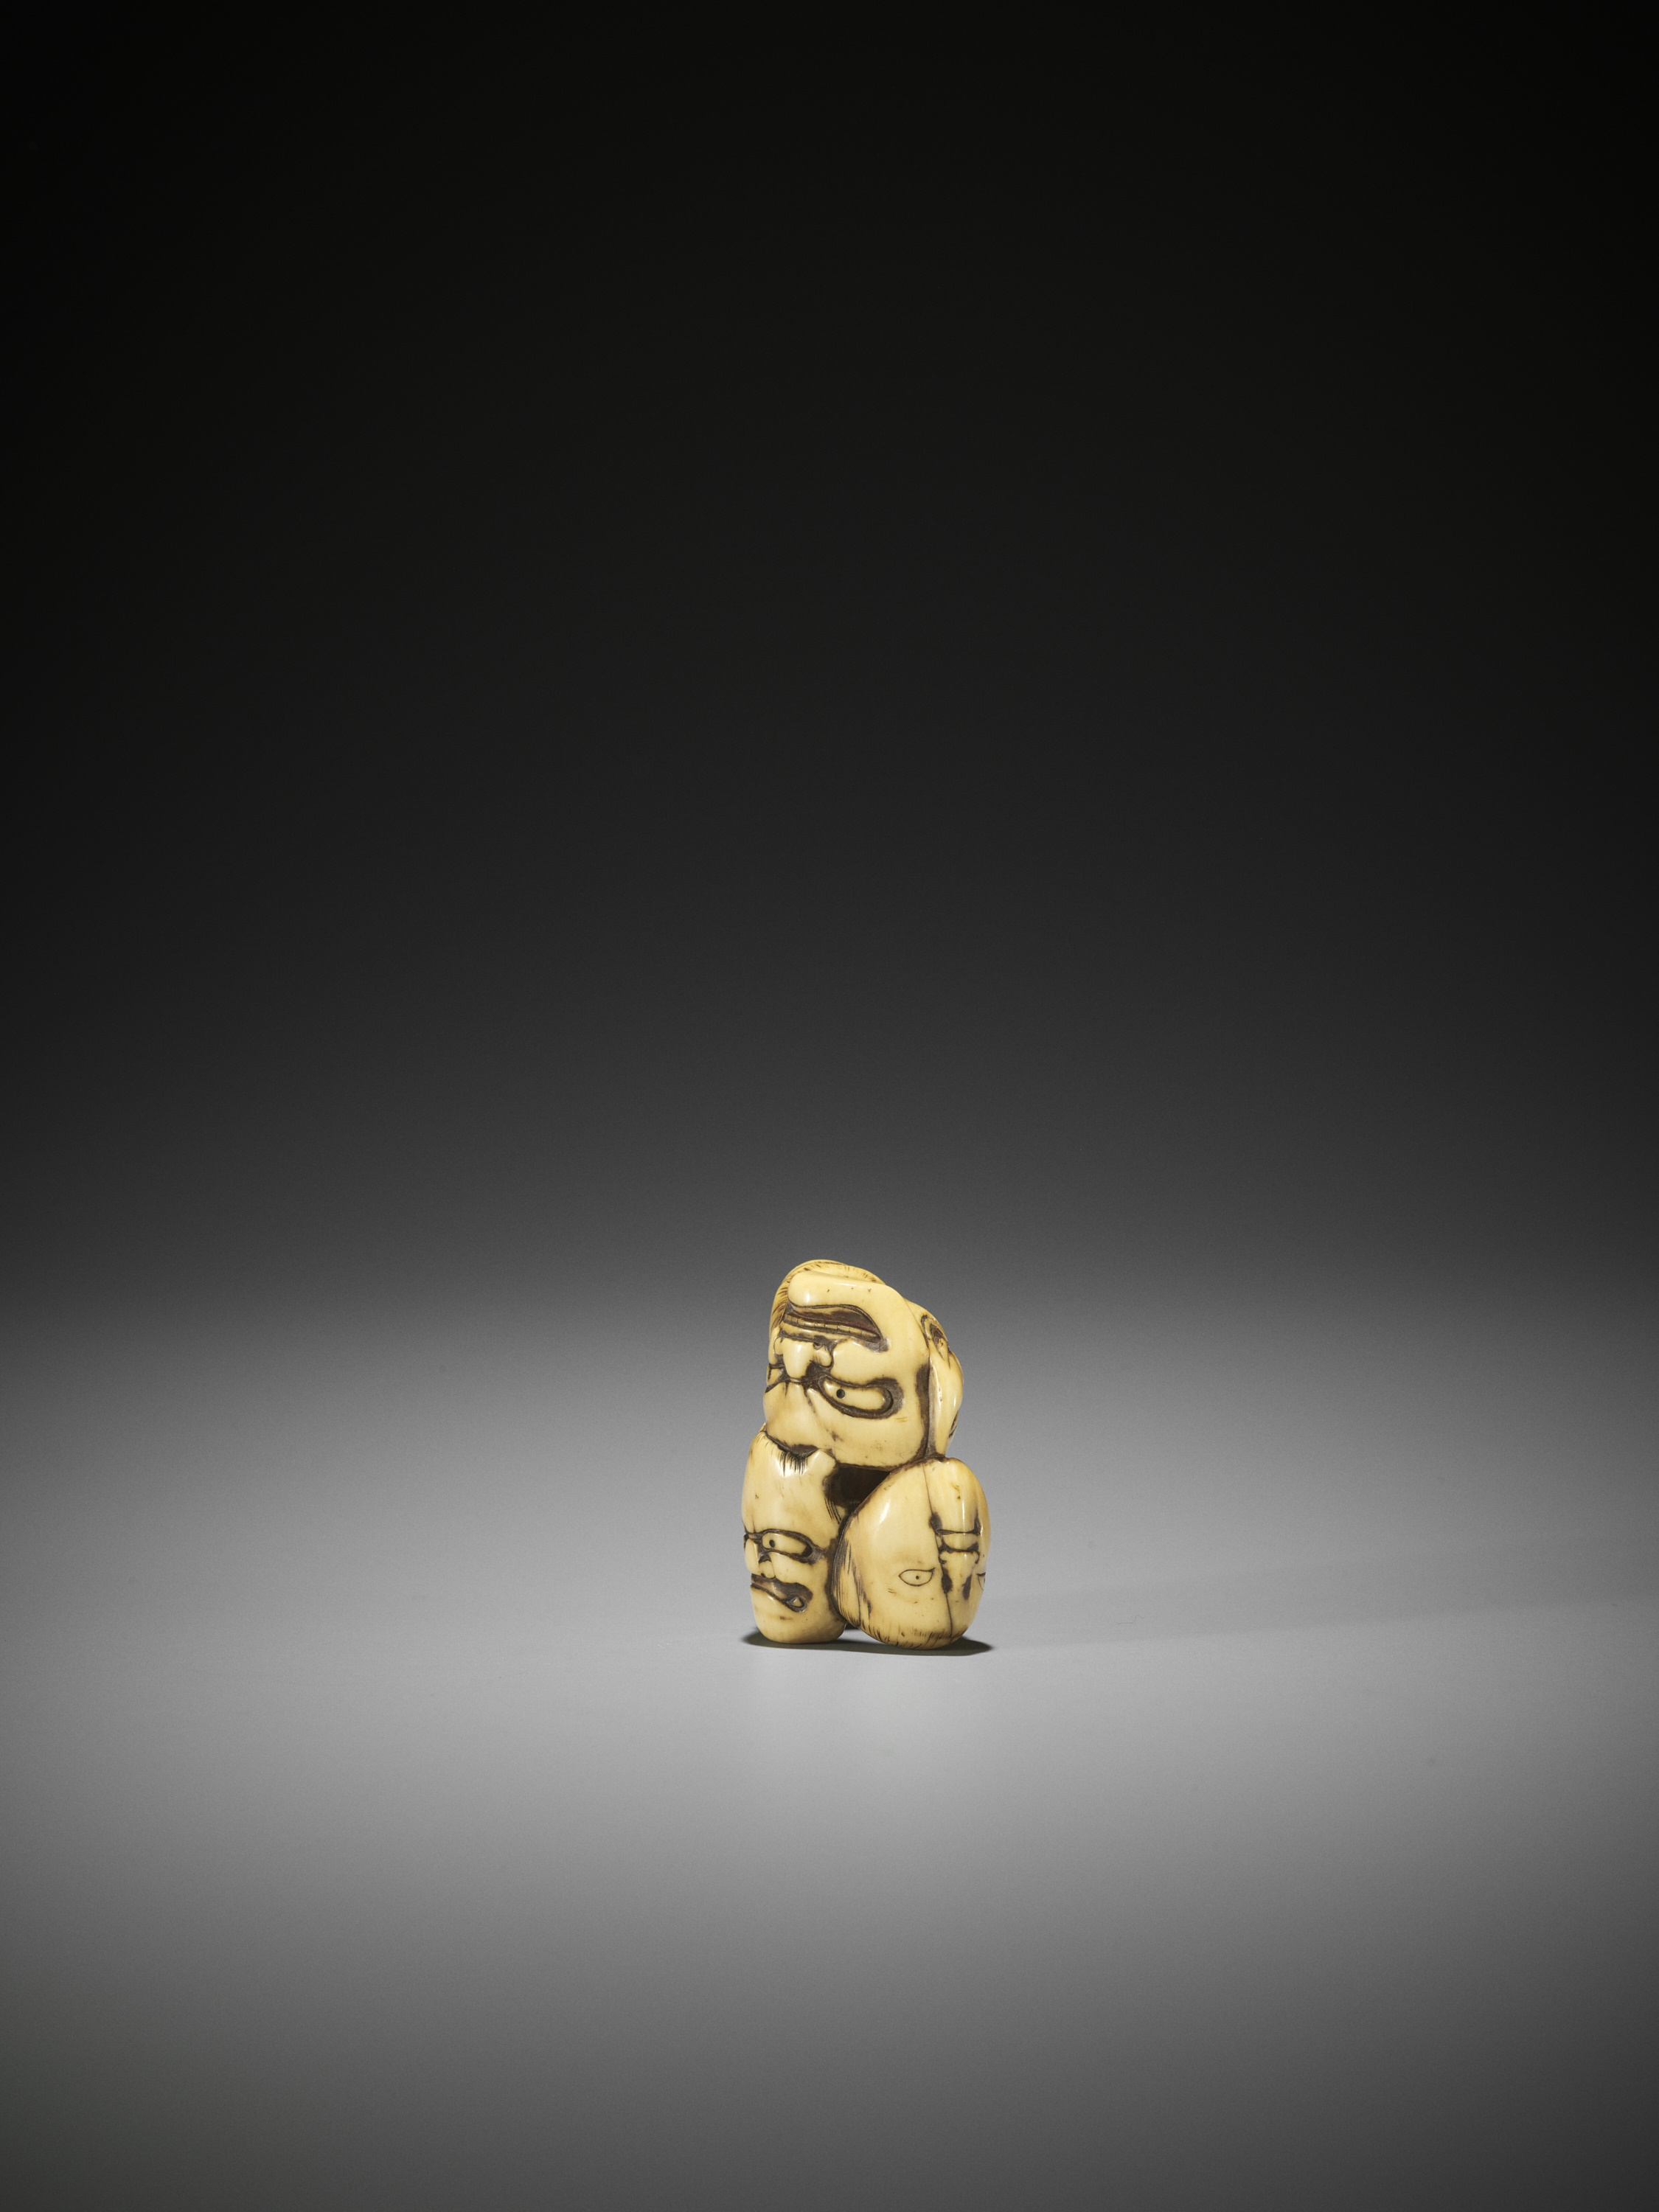 AN IVORY NETSUKE OF A GROUP OF SEVEN MASKS - Image 3 of 8